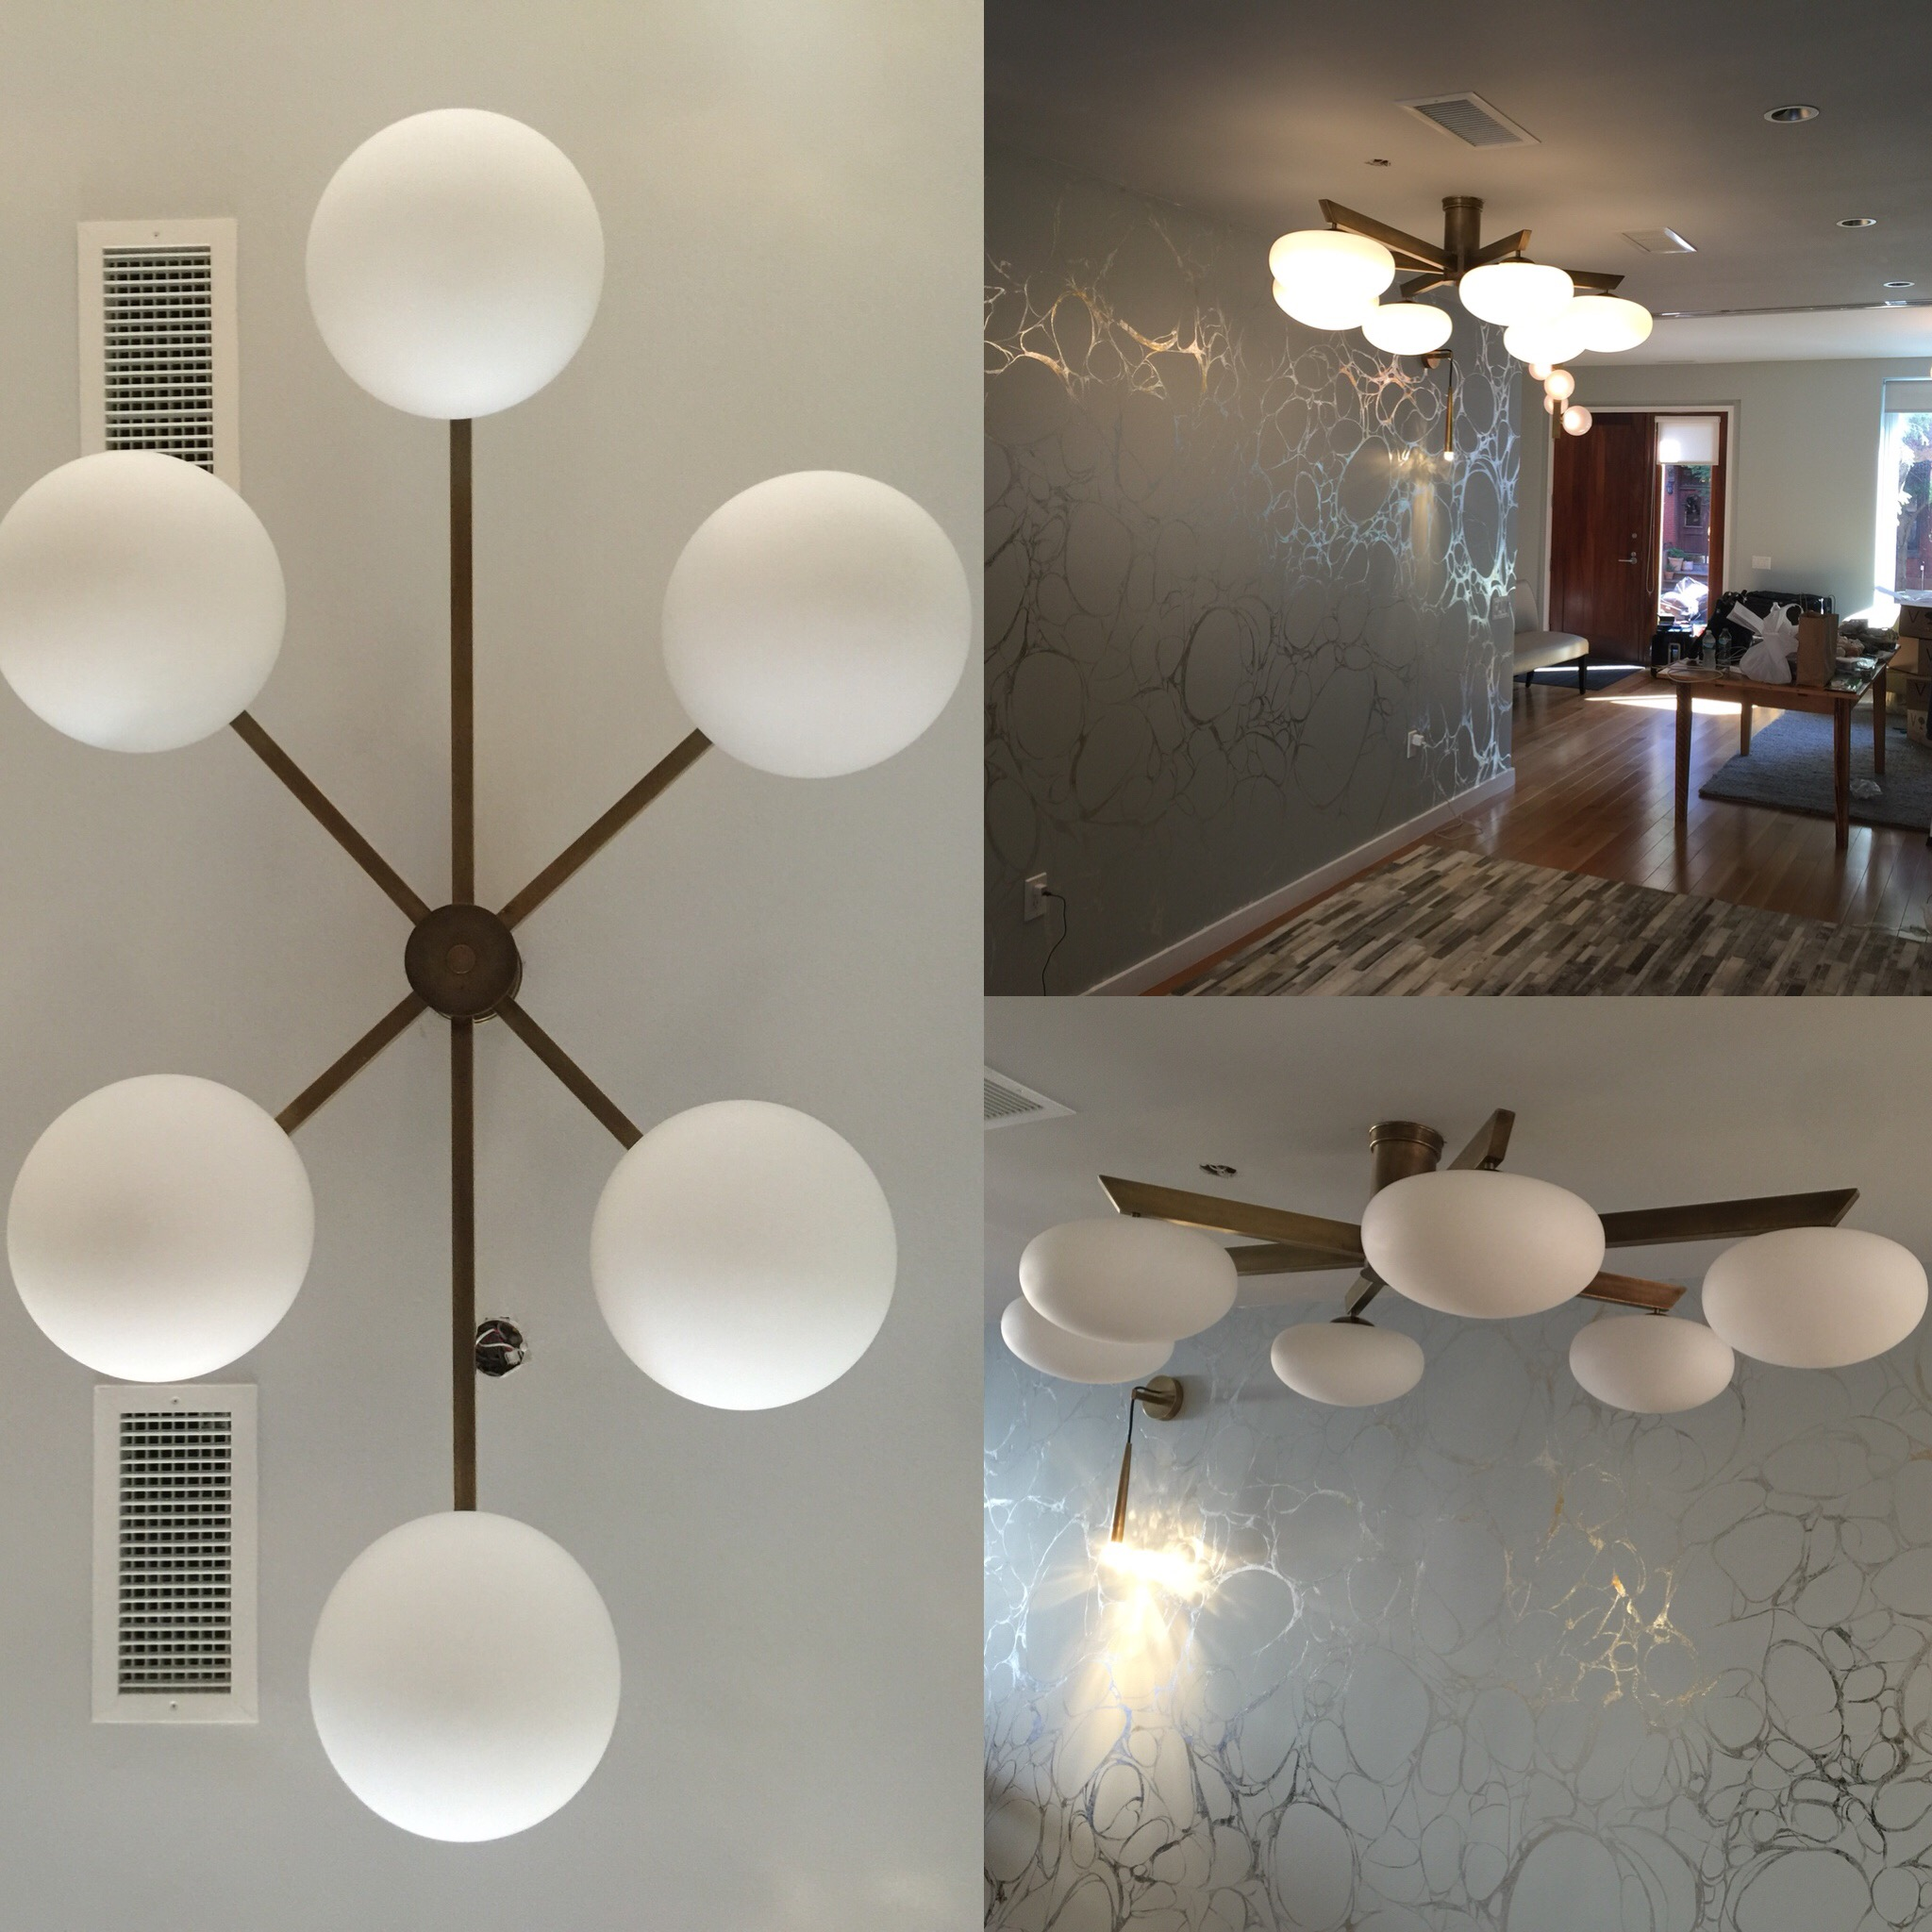 Brass + Glass Angelo Lelli style ceiling fixture